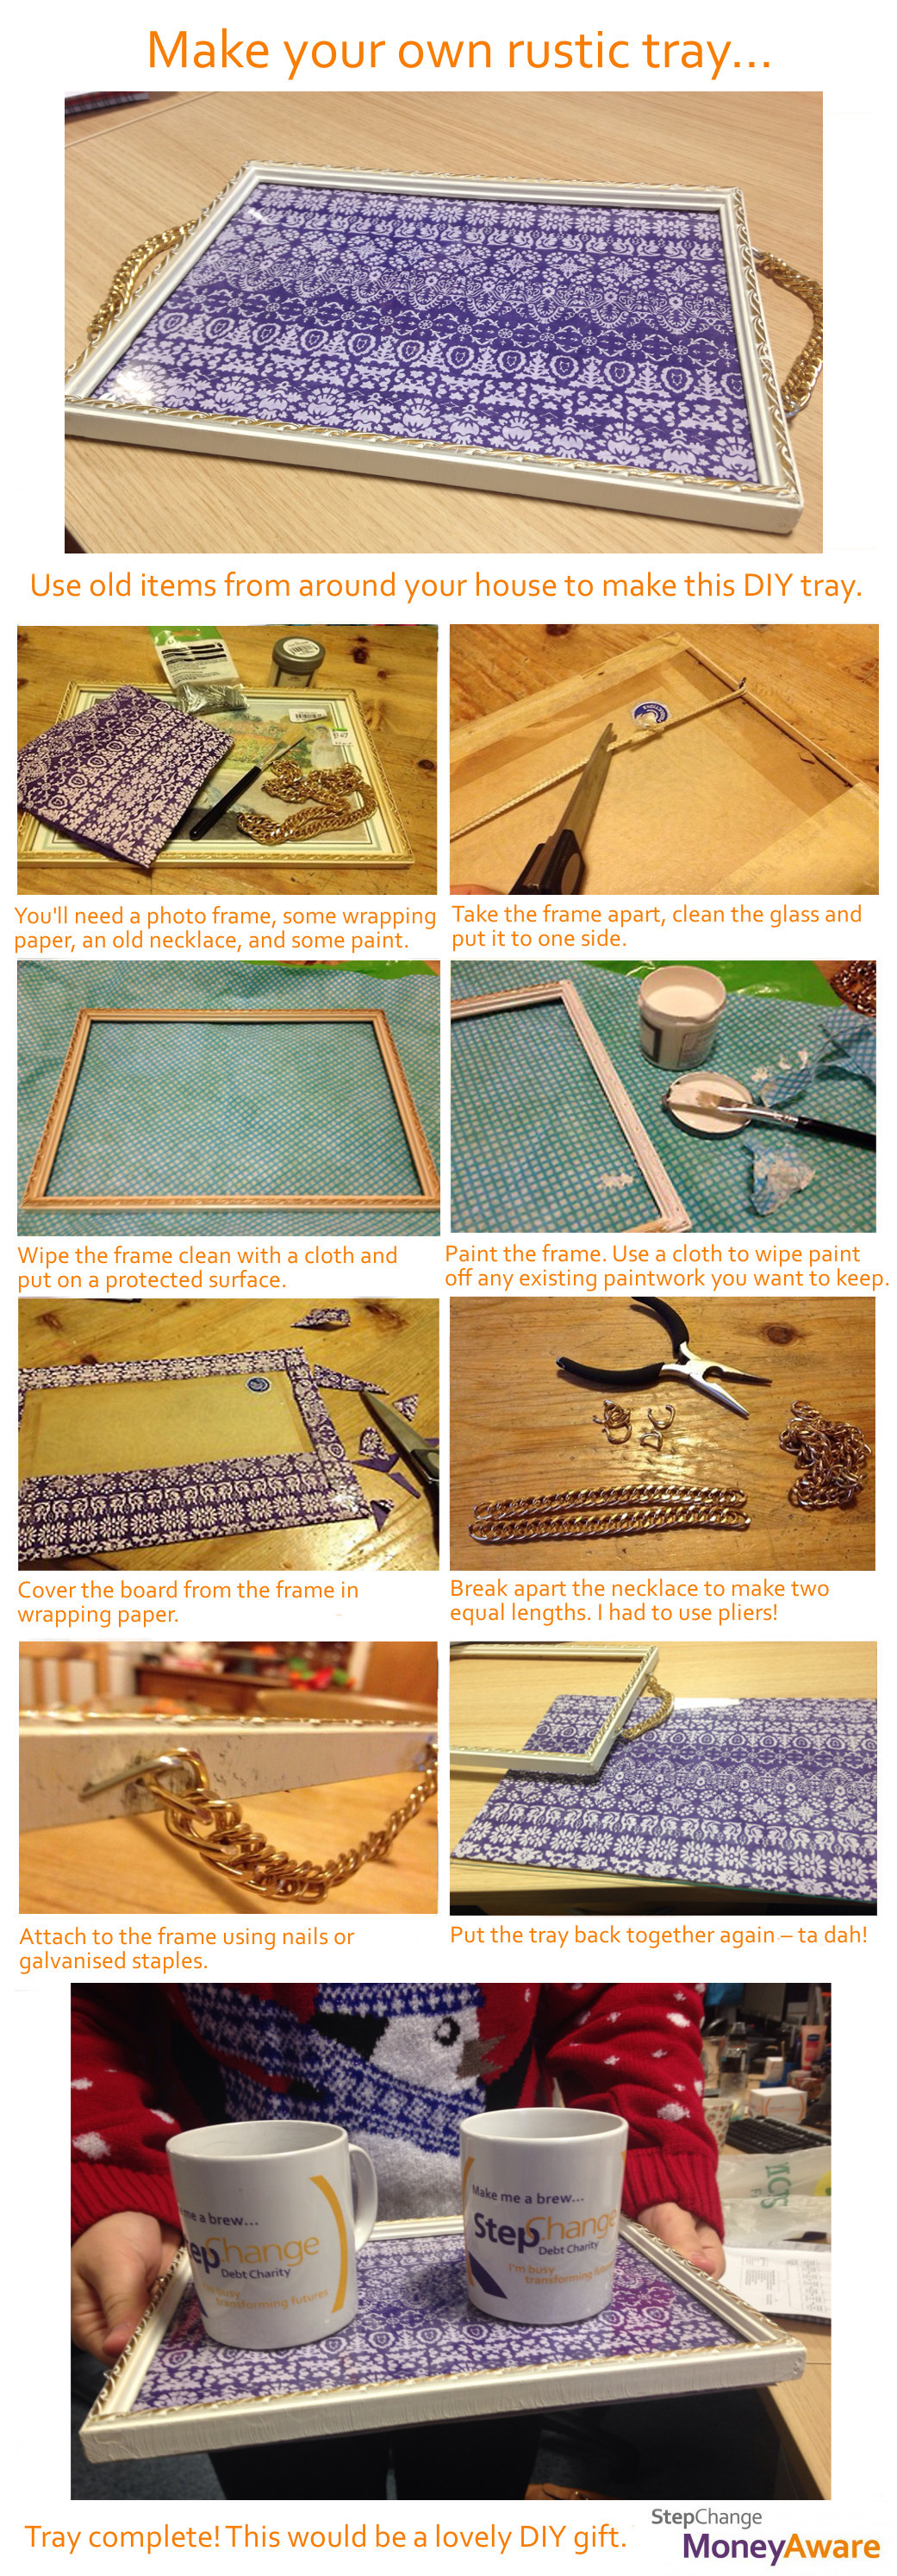 step by step visual guide to make a tray